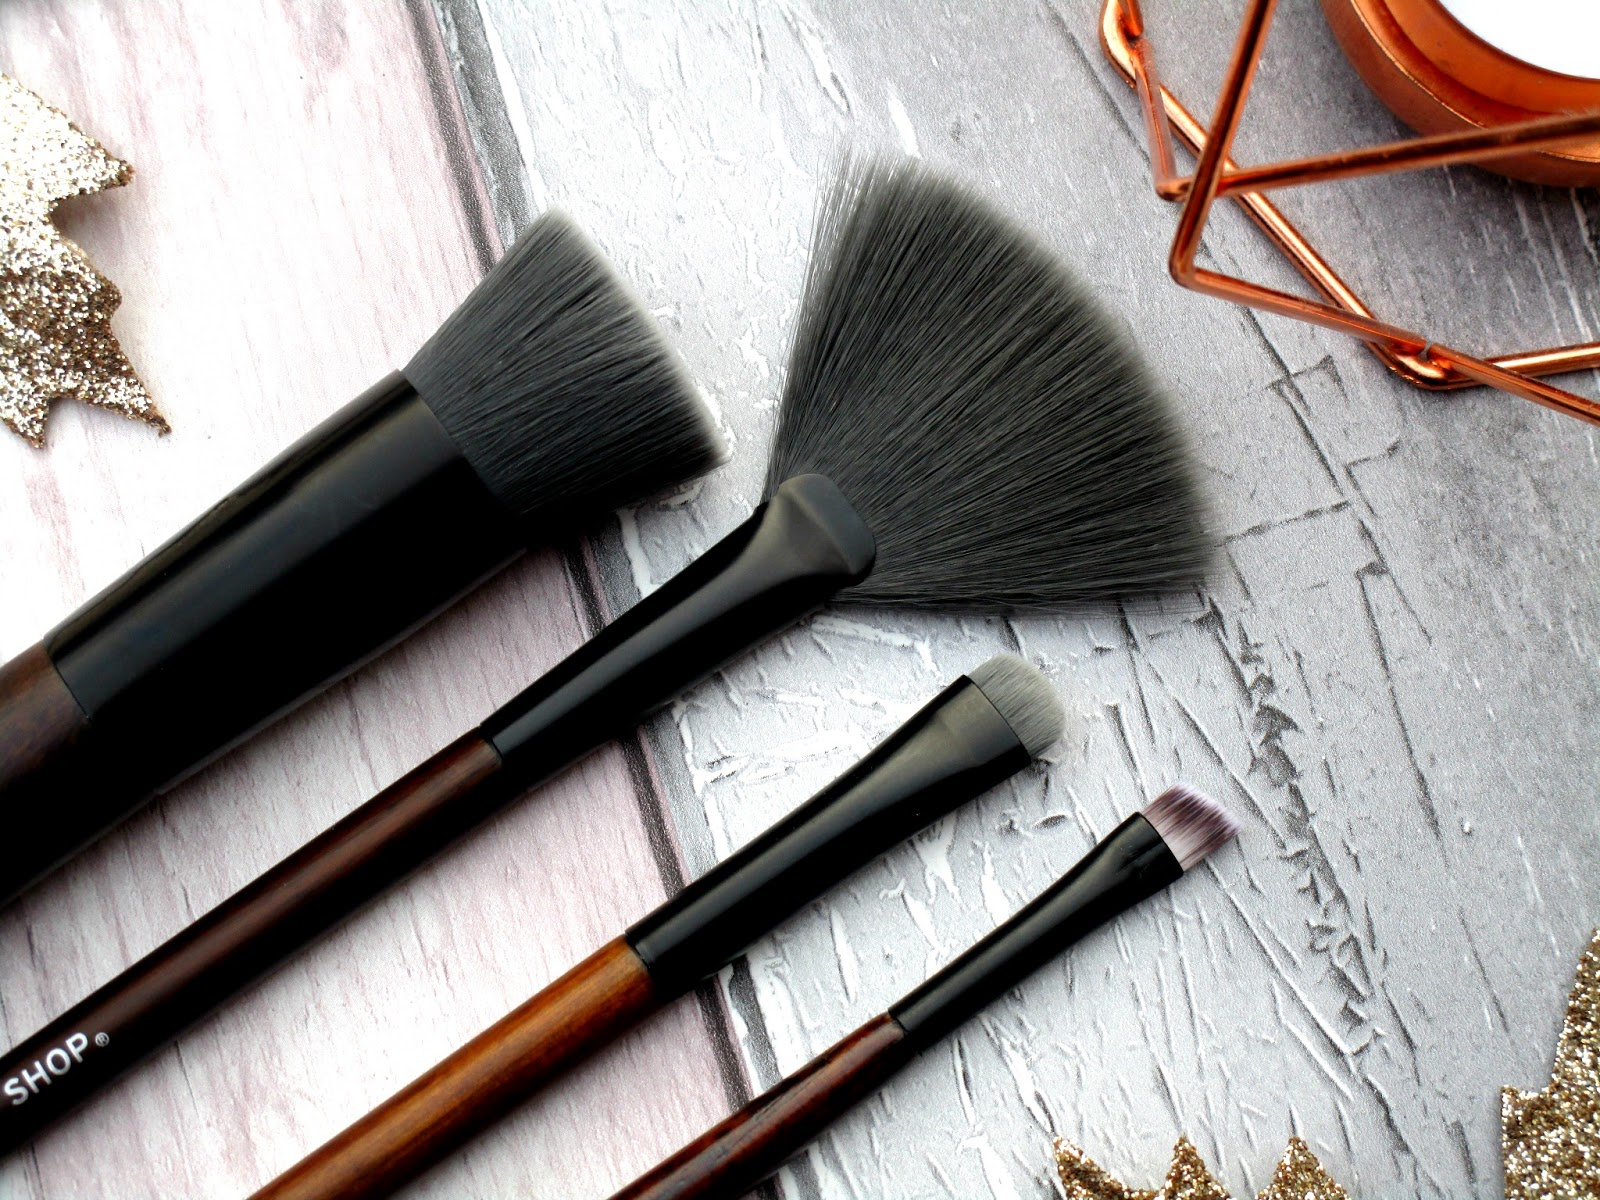 I've been giving four of the new brushes a whirl and my goodness I love them all so much, I had never tried any makeup brushes from the body shop before ...